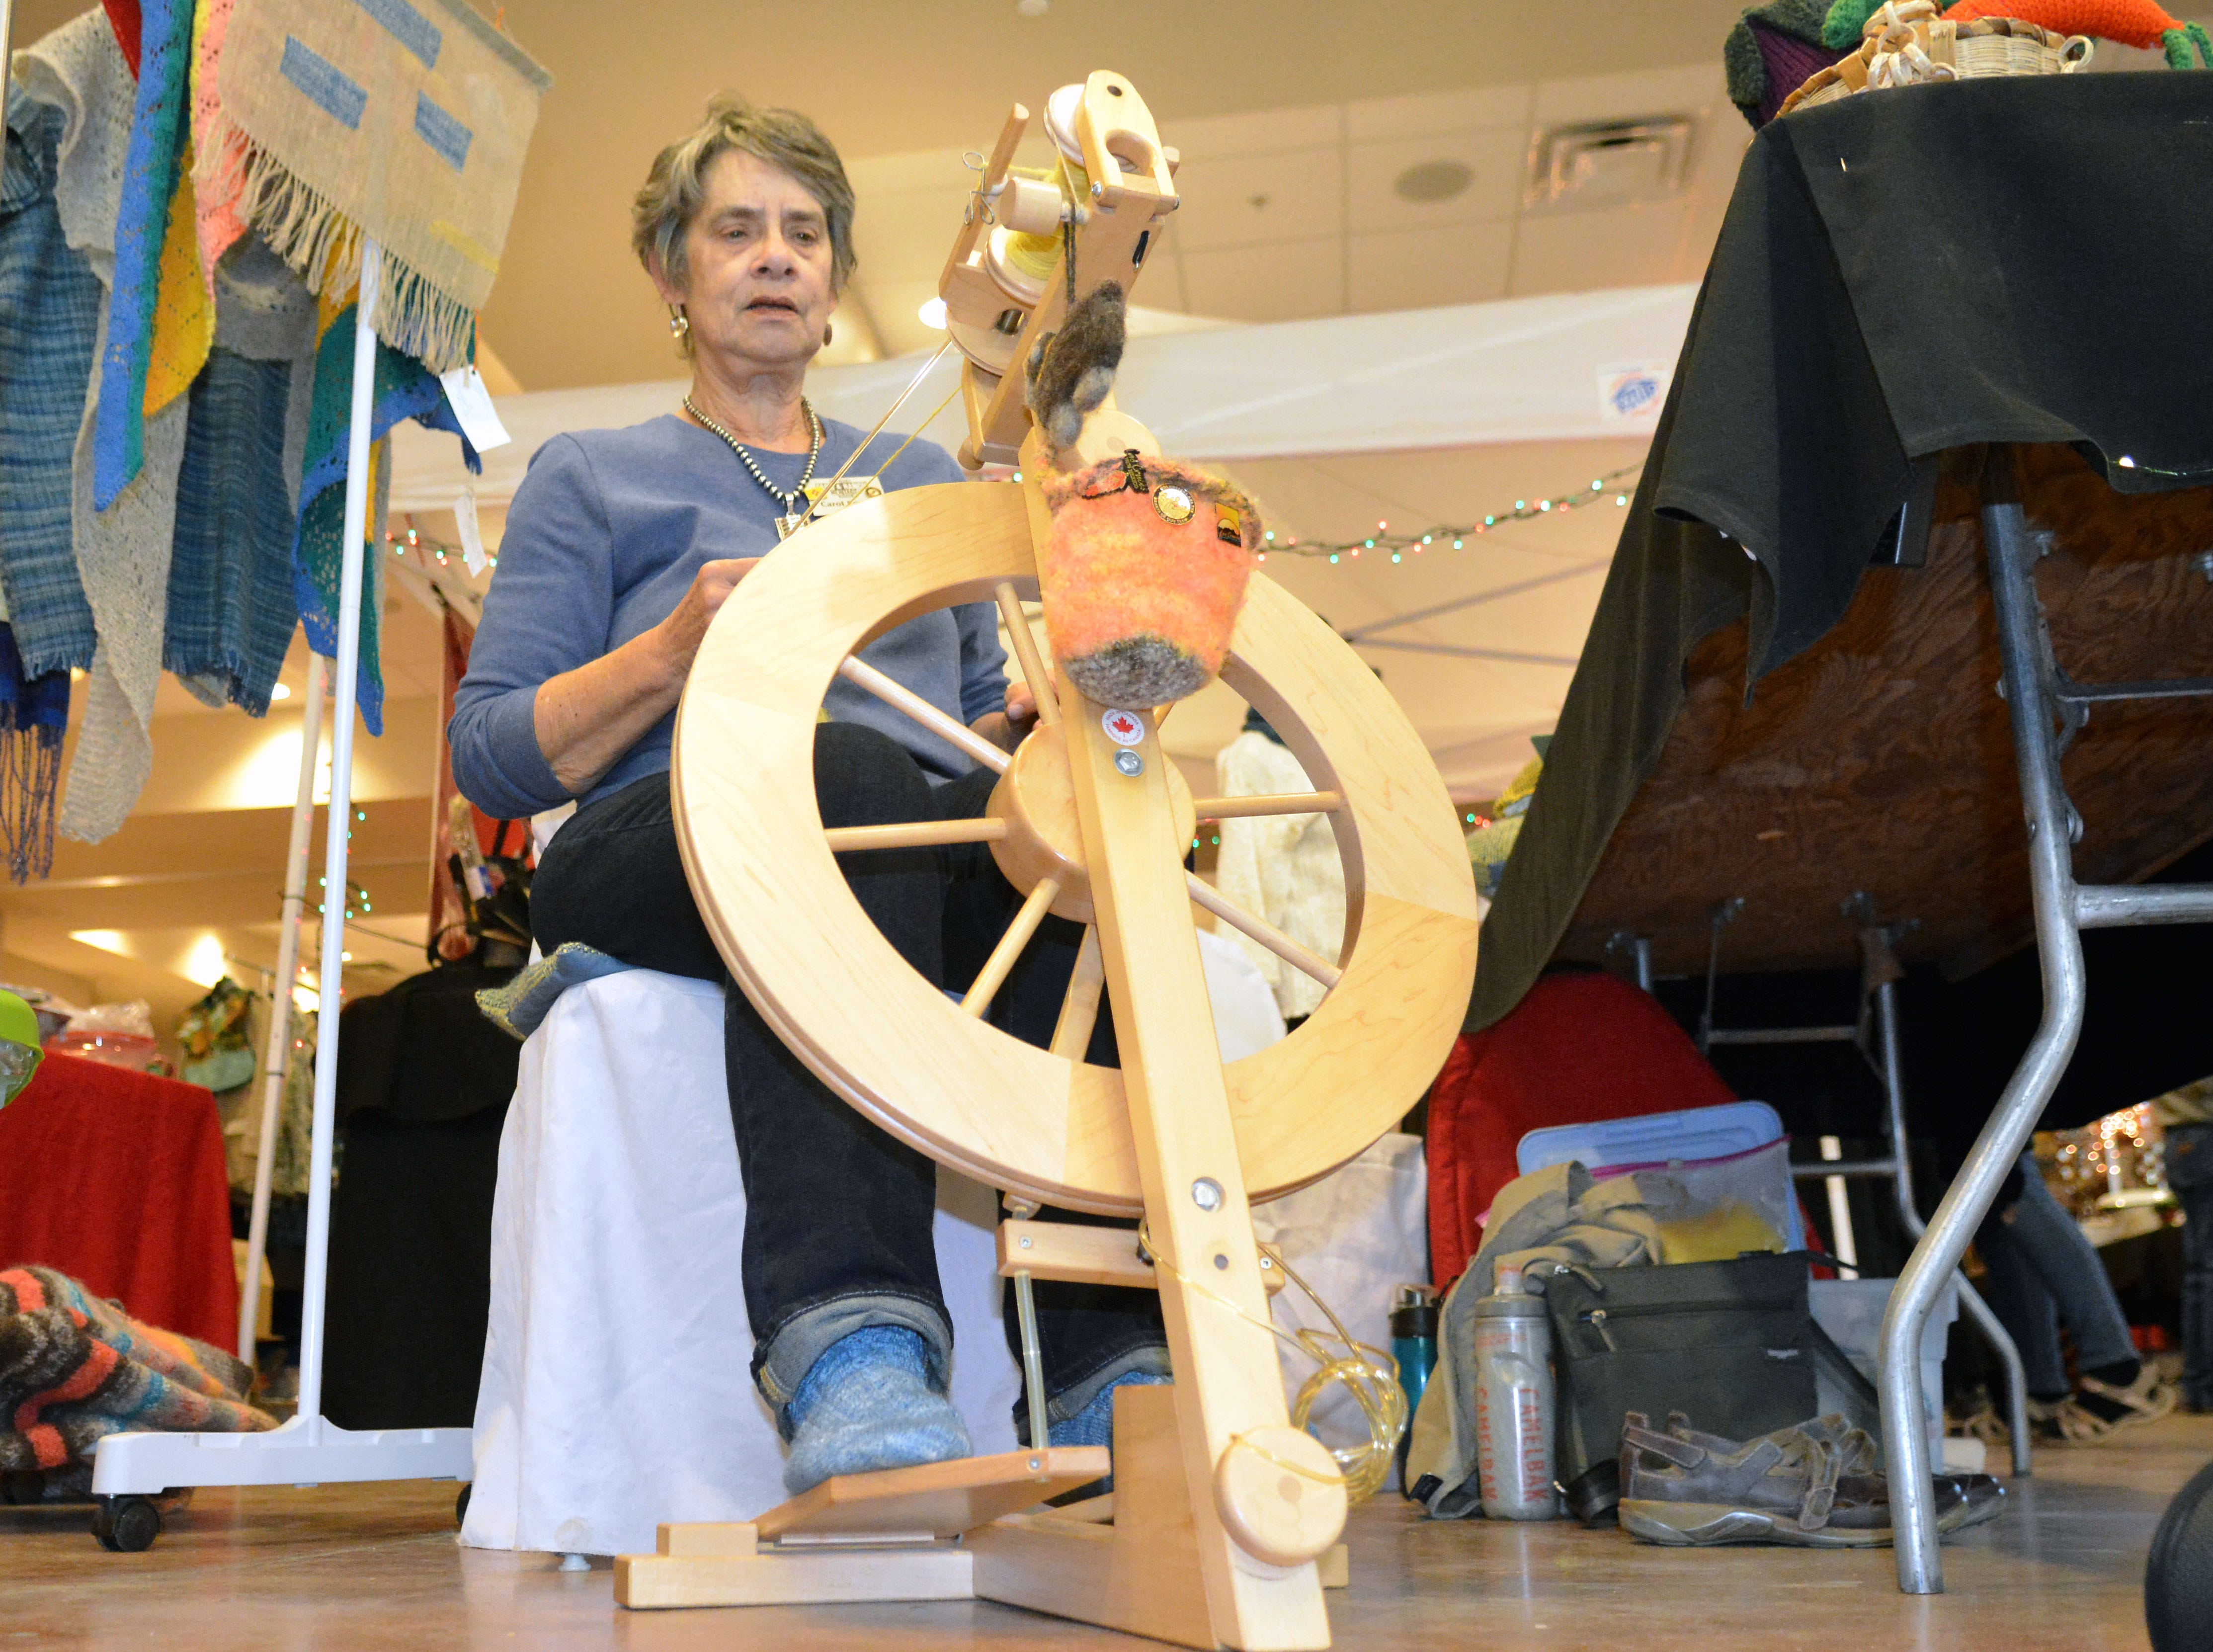 Carol Eggers spins yarn on her spinning wheel, which she then weaves and knits into place mats, scarves and towels.  She was one of more than 70 vendors at this year's HomeGrown Food Show and Gift Market at the Farm and Ranch Heritage Museum.  Photo taken 11/17/18.